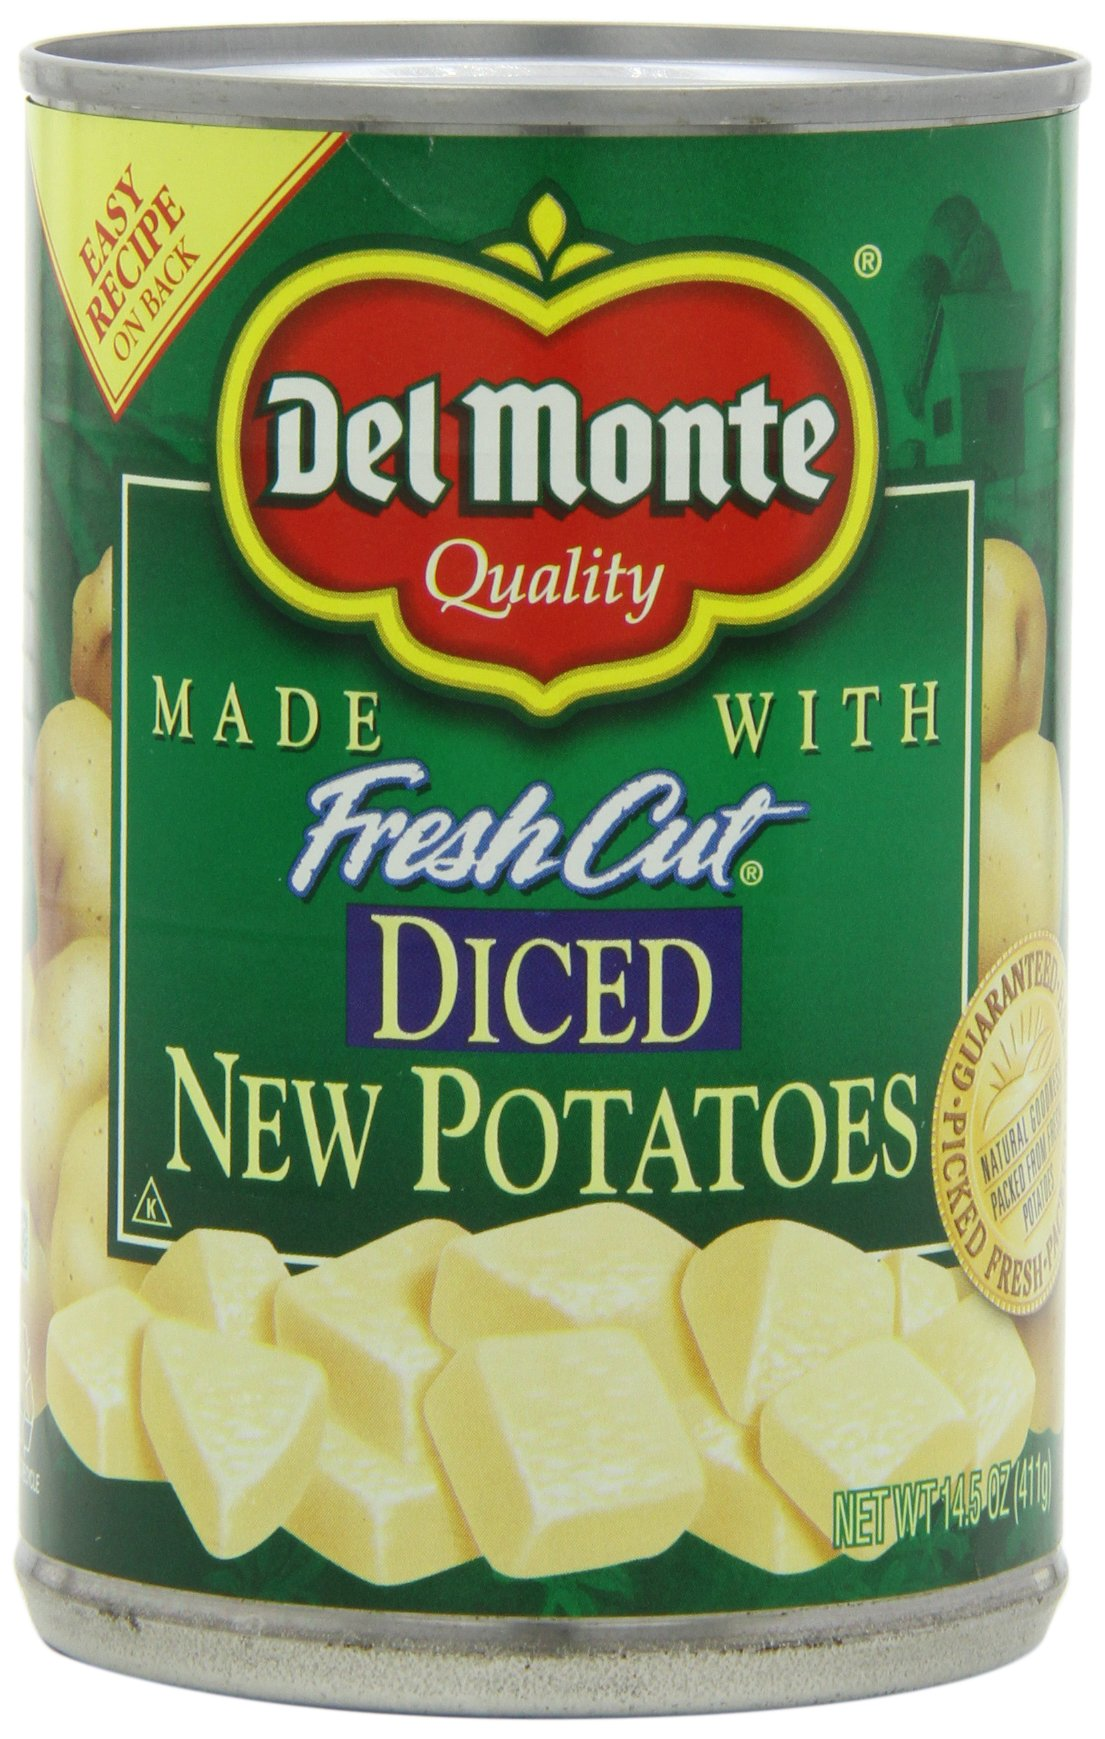 Del Monte Diced Potatoes, 14.5-Ounce (Pack of 8) by Del Monte